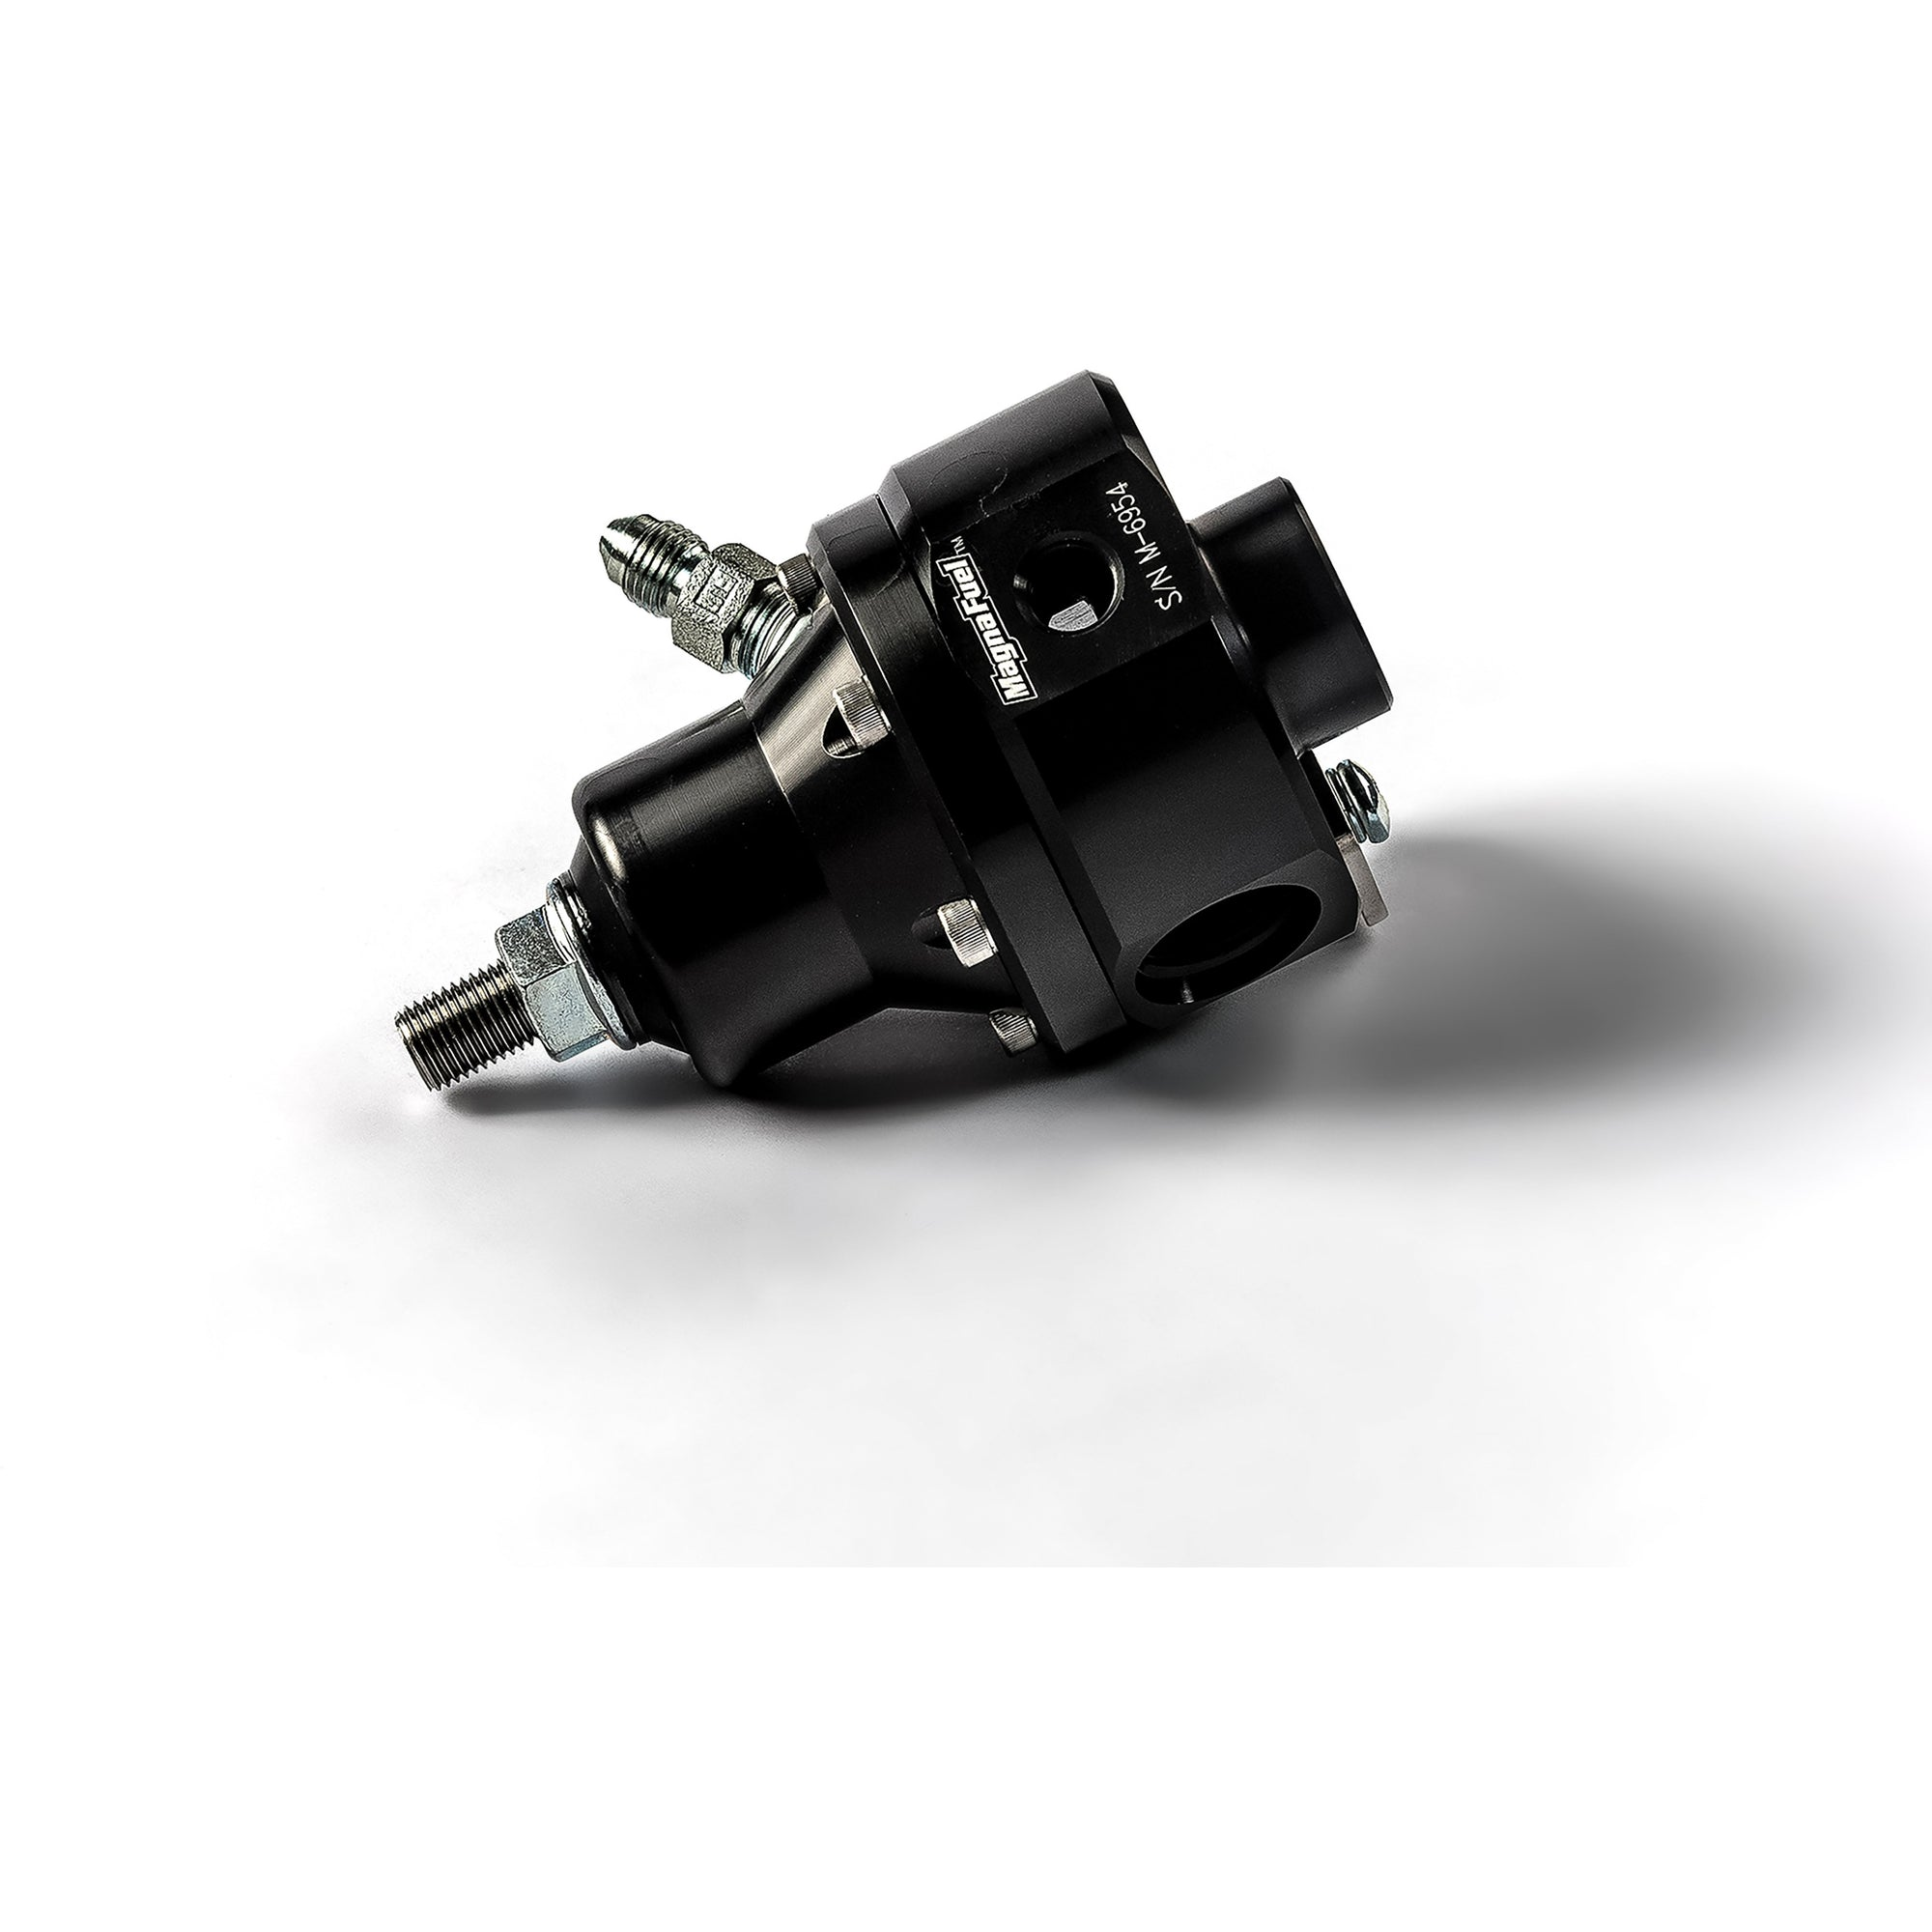 Magnafuel MP-9925-B-BLK Standard EFI Fuel Pressure Regulator Black Anodized Boost Reference Good to 900rwhp-Magnafuel-Motion Raceworks